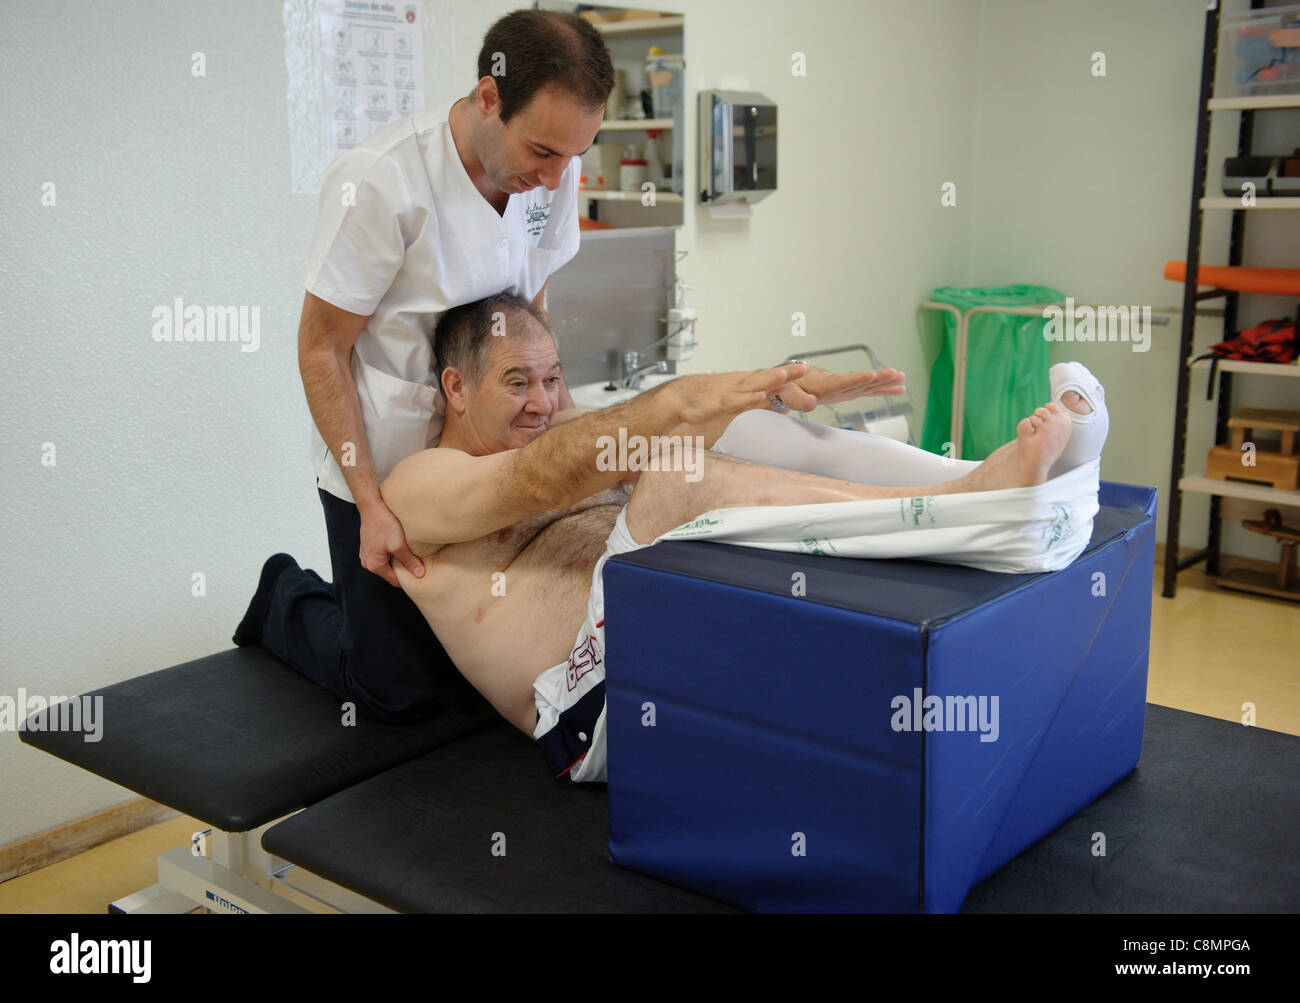 Male physiotherapist helping a patient do an exercise - Stock Image